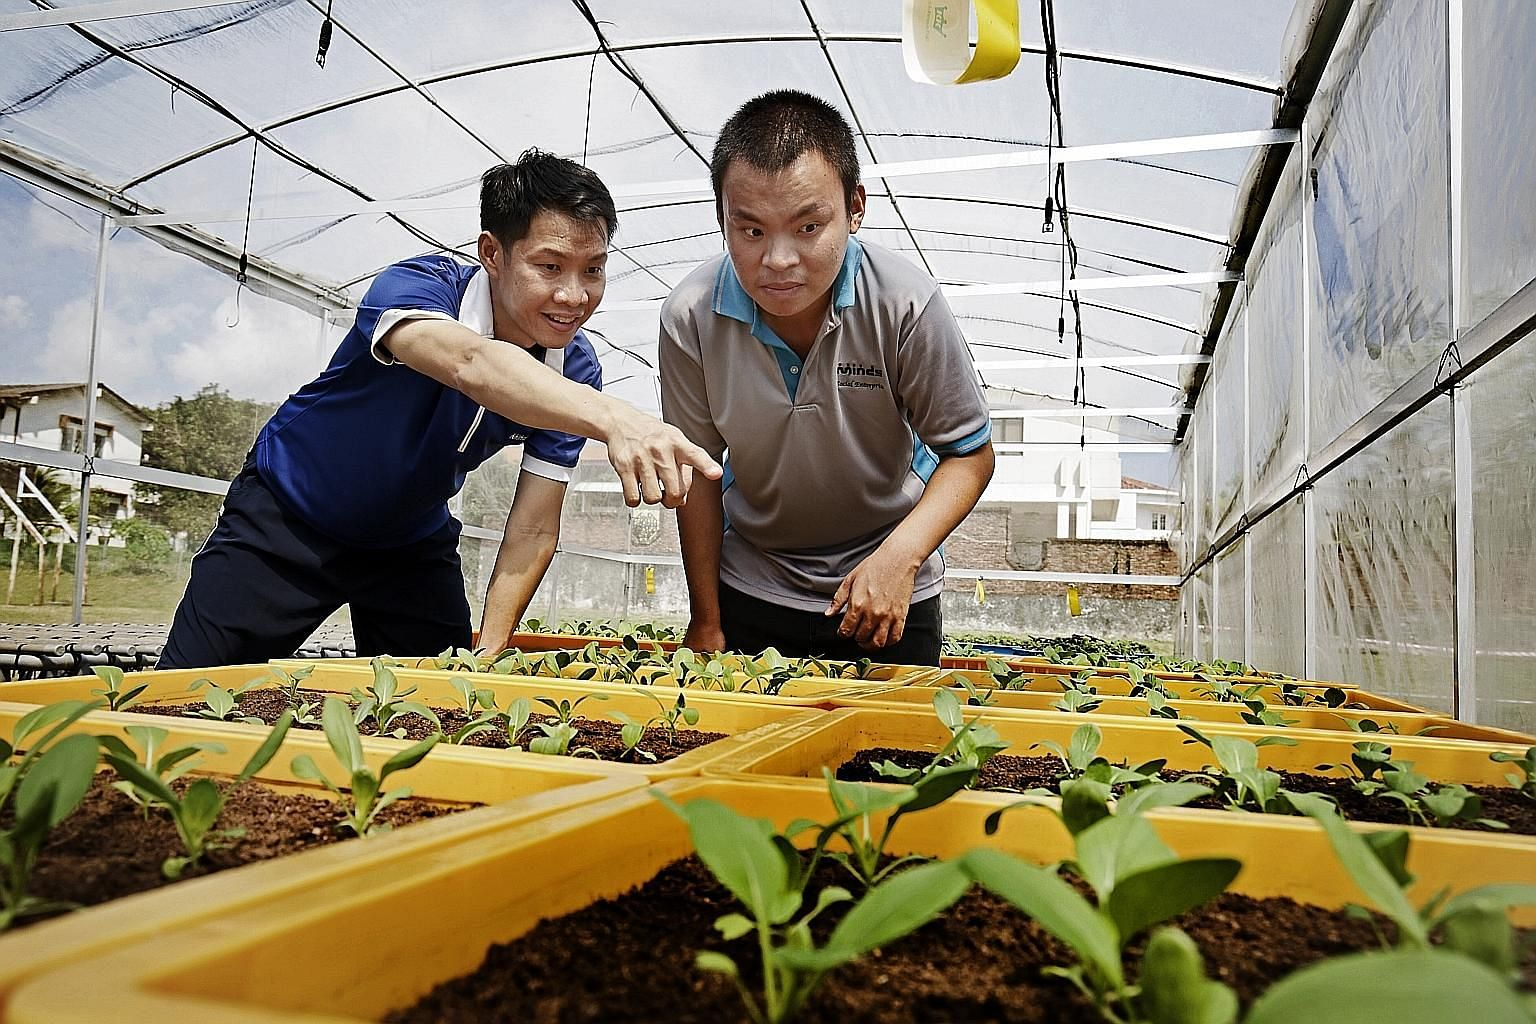 Minds senior training officer Hsu Hsia Yang (far left) with beneficiary Ang Kian Chuan, who has an intellectual disability, at one of the greenhouses at the Minds centre in Rosyth Road, near Serangoon.